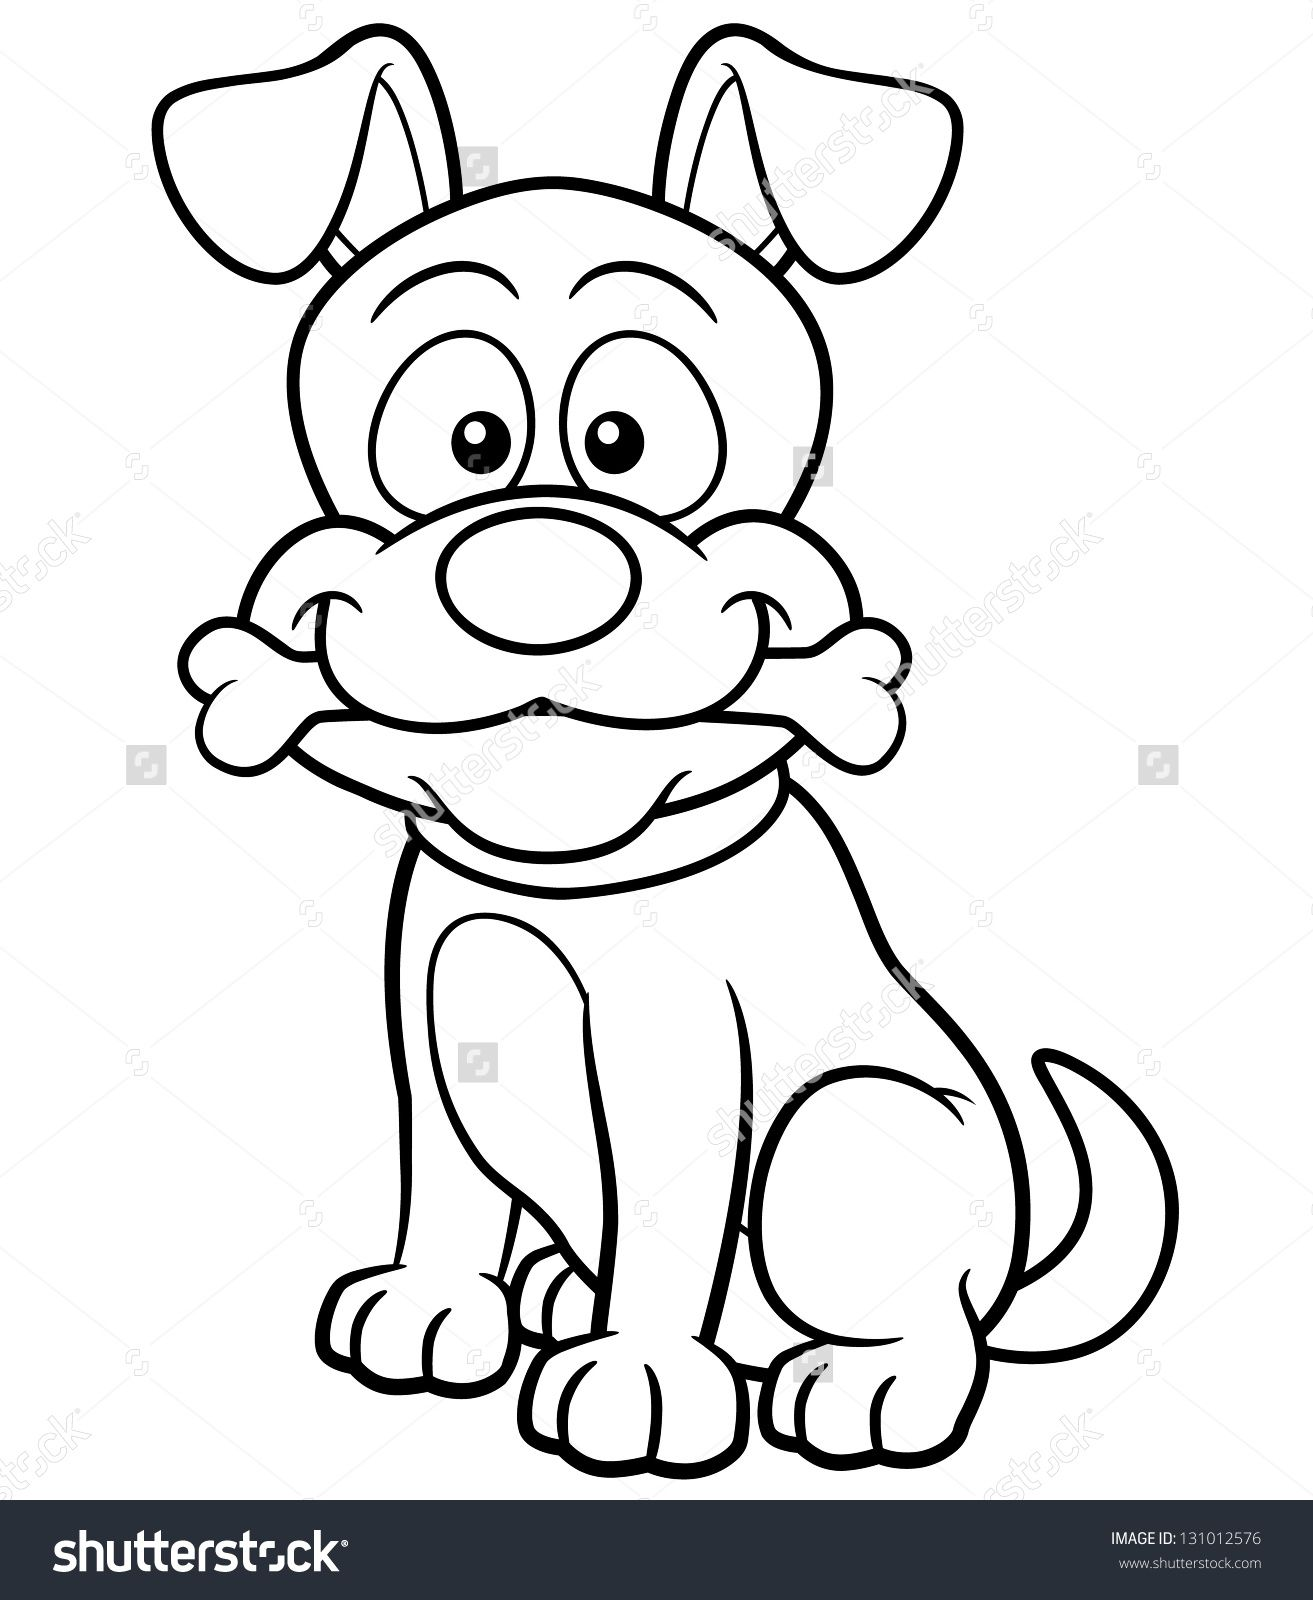 Vector Illustration Of Cartoon Dog Coloring Book Puppy